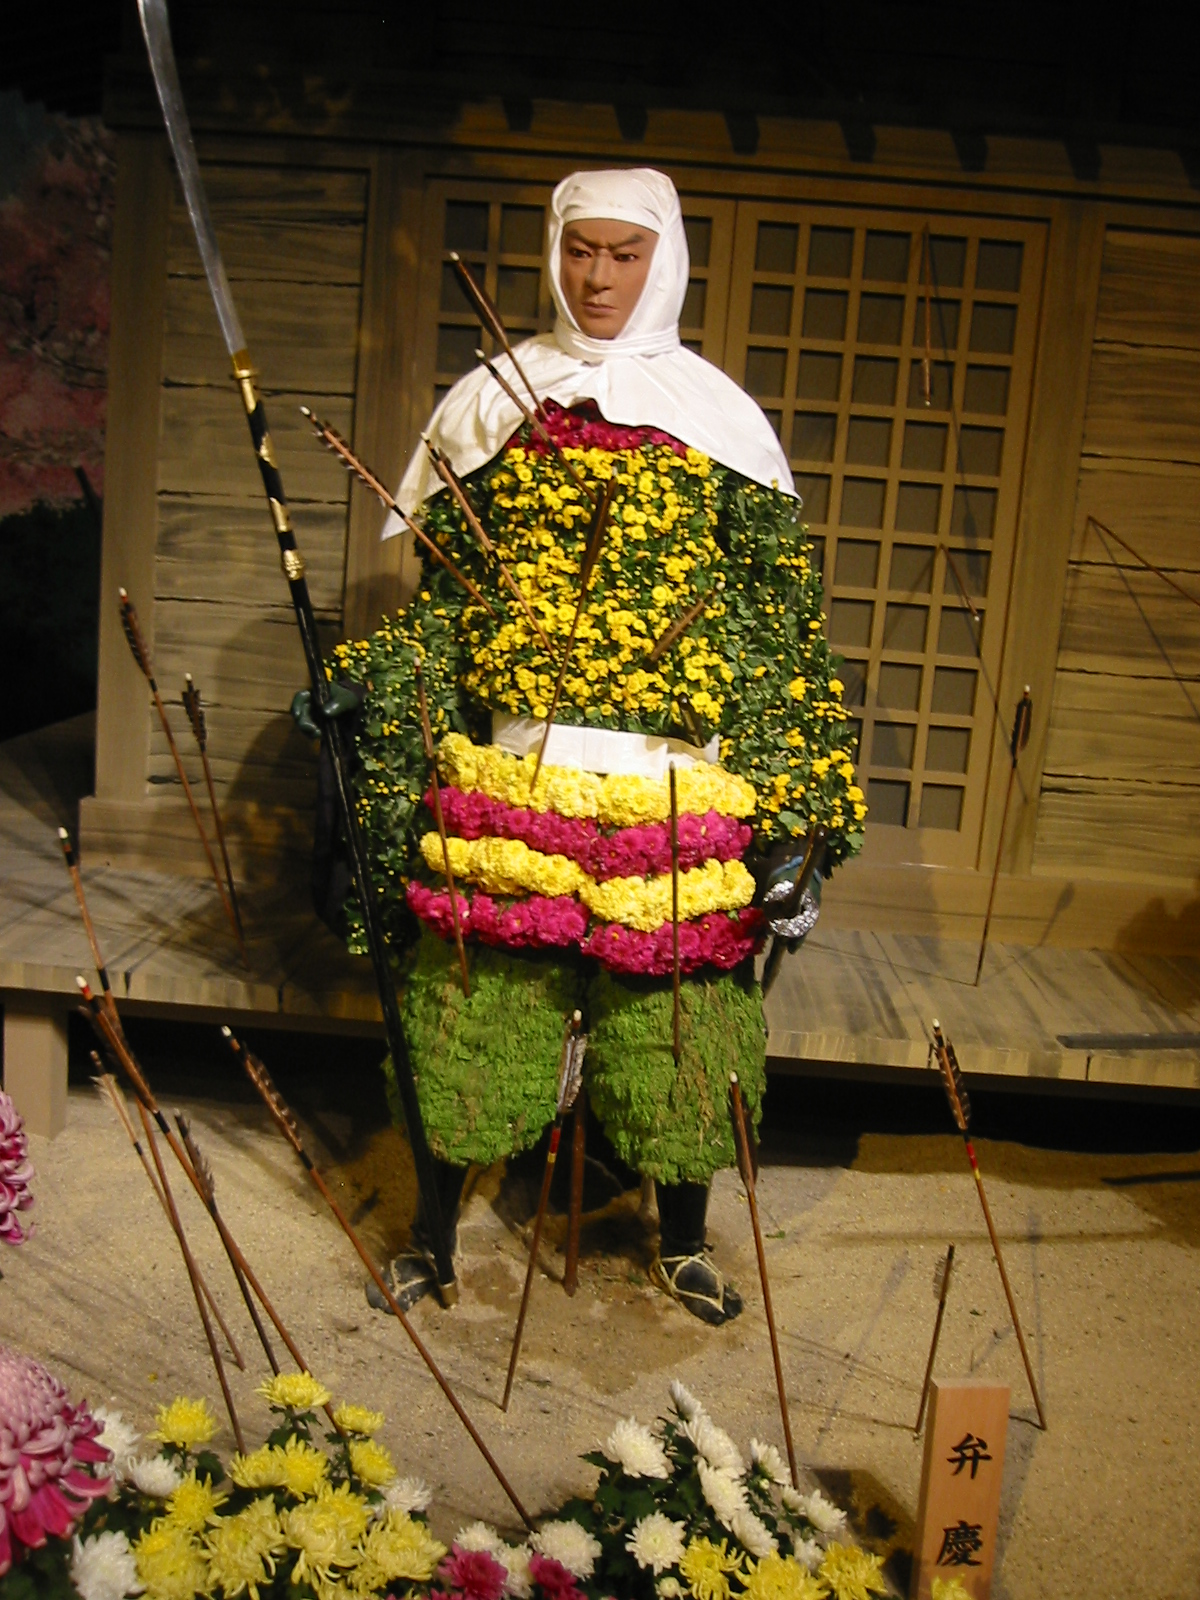 Chrysanthemum doll depicting the standing death of Benkei Photographed by Jnn